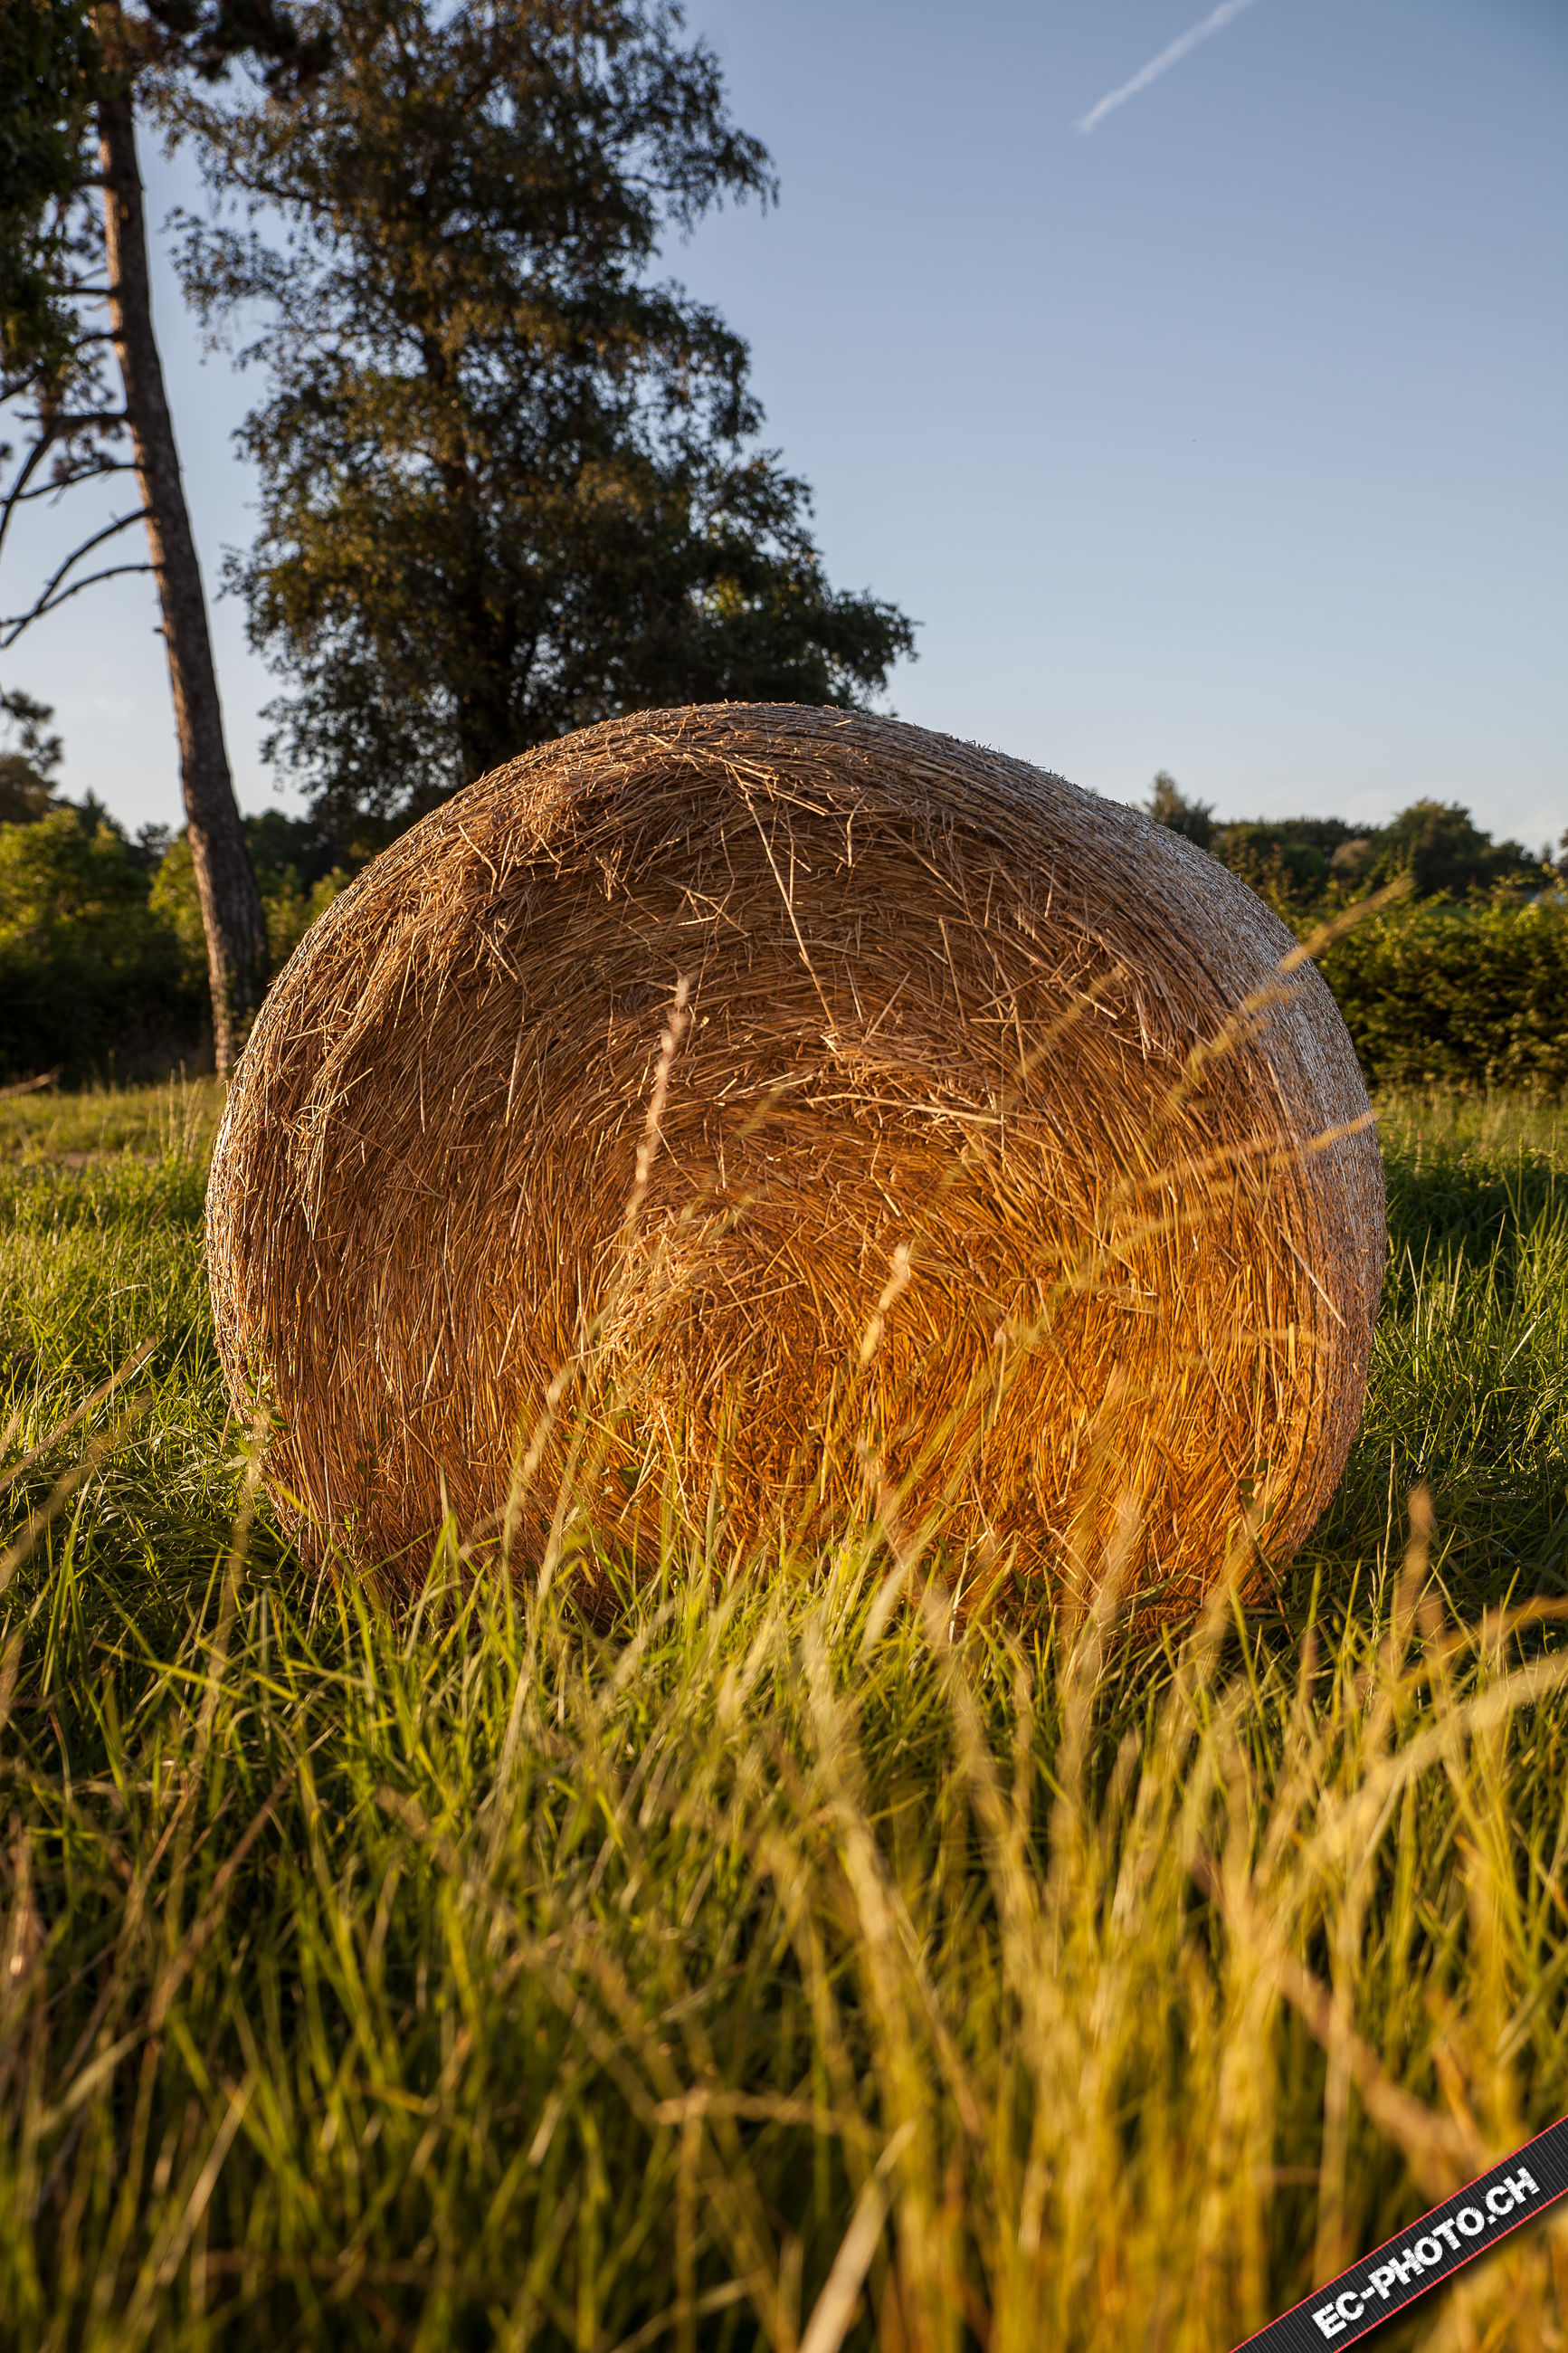 tree, rural scene, growth, hay, clear sky, close-up, grass, harvesting, nature, field, agriculture, bale, tranquil scene, tranquility, plant, farm, day, outdoors, blue, no people, sky, green color, cultivated land, surface level, haystack, farmland, beauty in nature, scenics